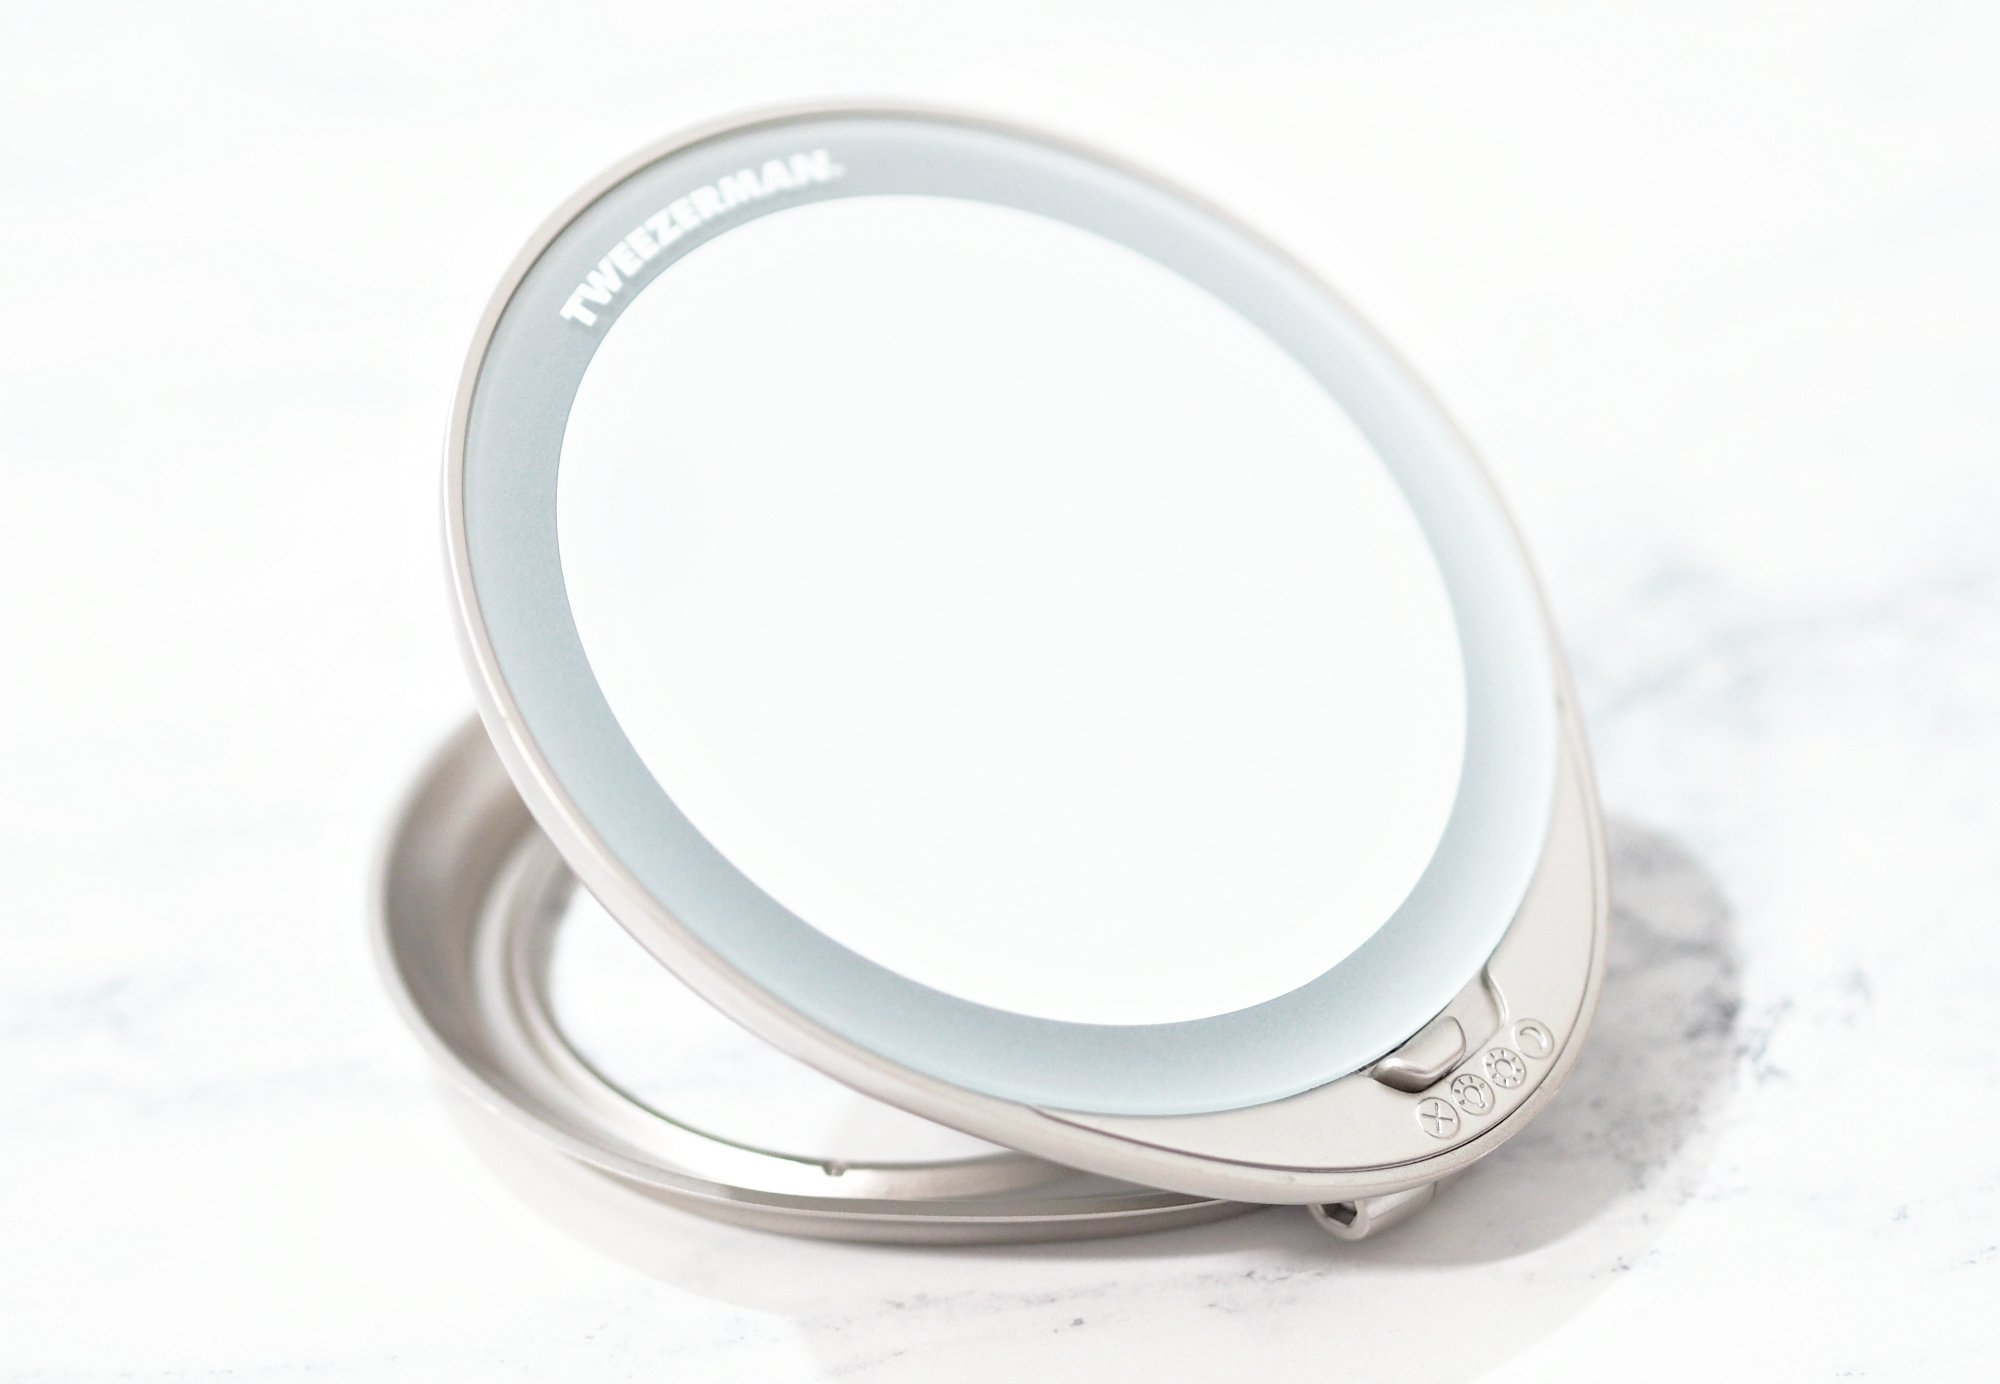 Tweezerman Adjustable Lighted Mirror Review - Mirror with three light settings